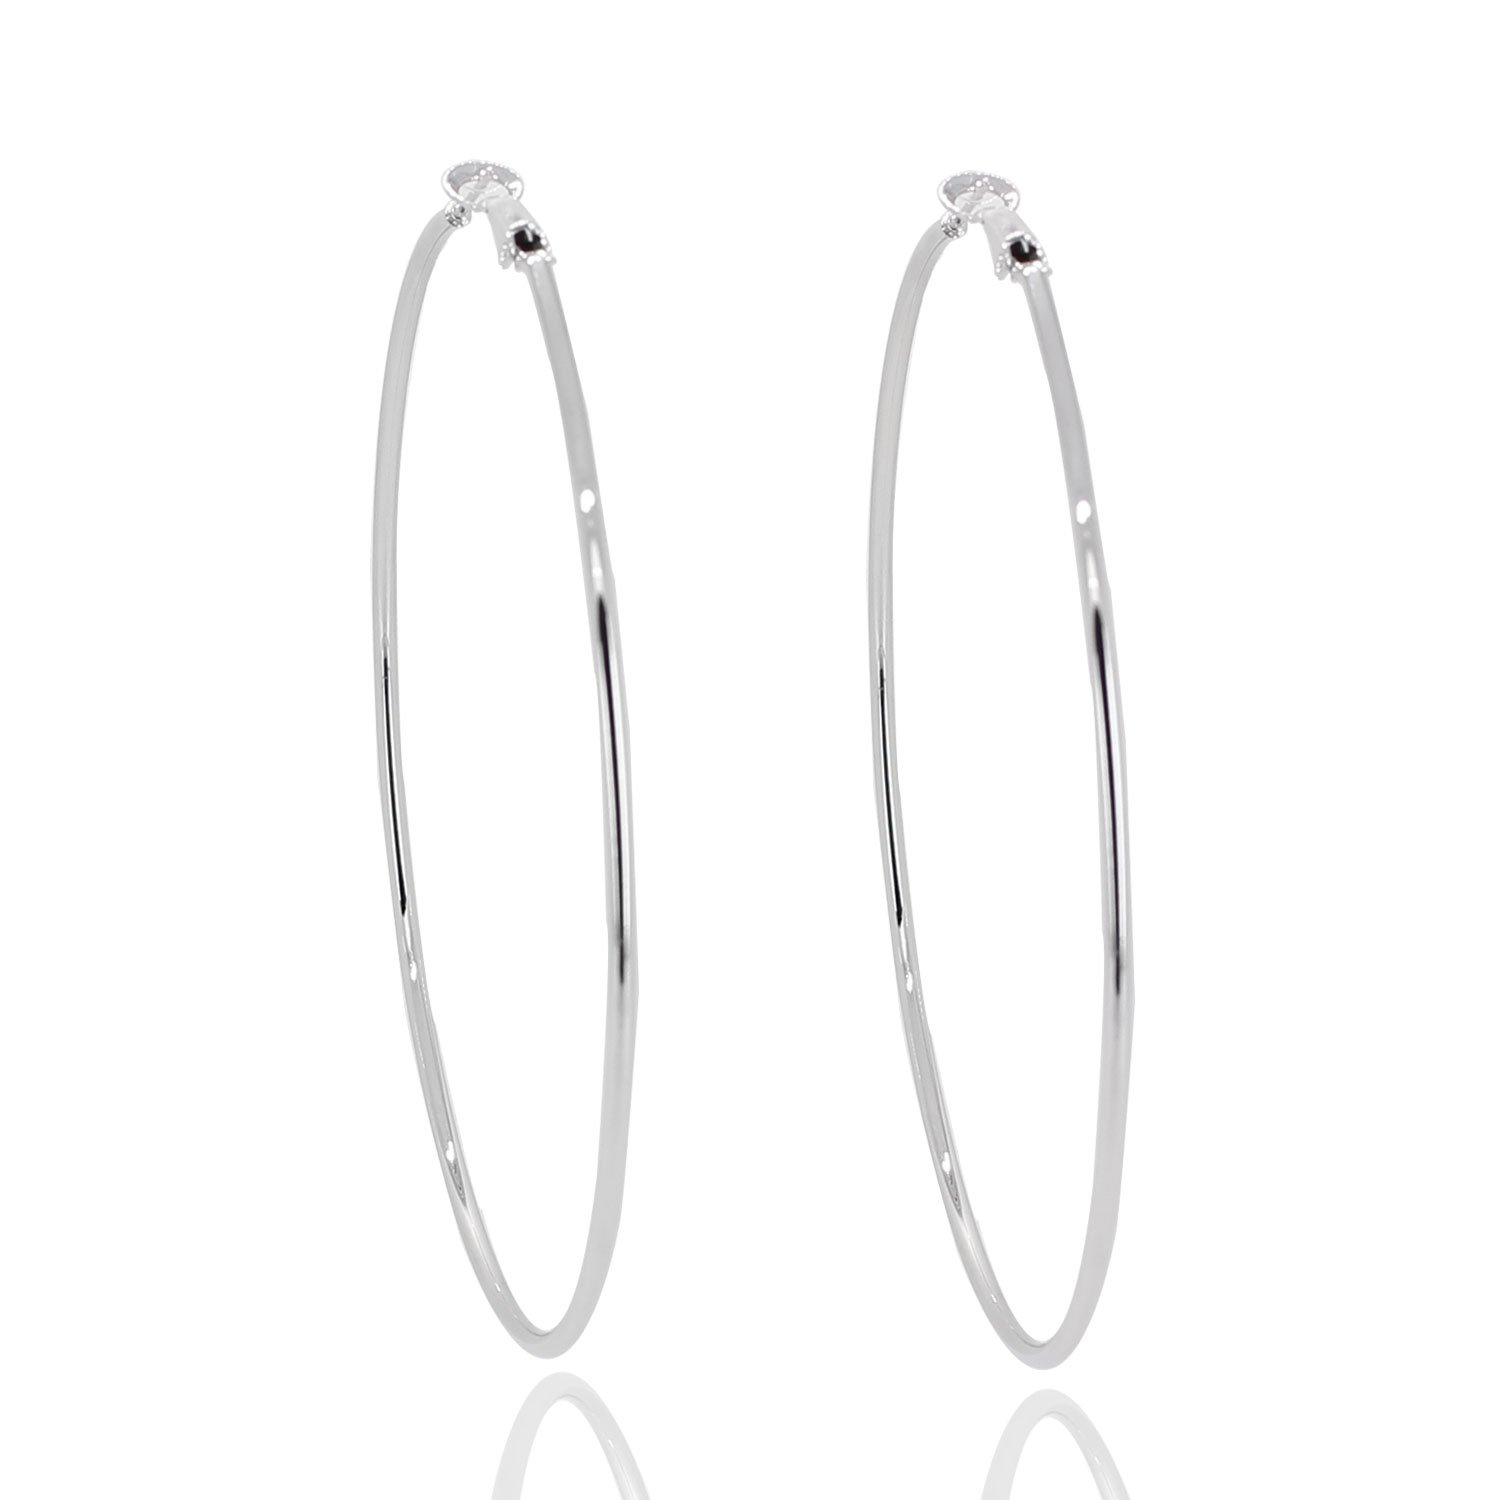 Super Large Hoop Earrings Solid 4'' Stainless Steel Rounded Big earring Silver tone Party club look